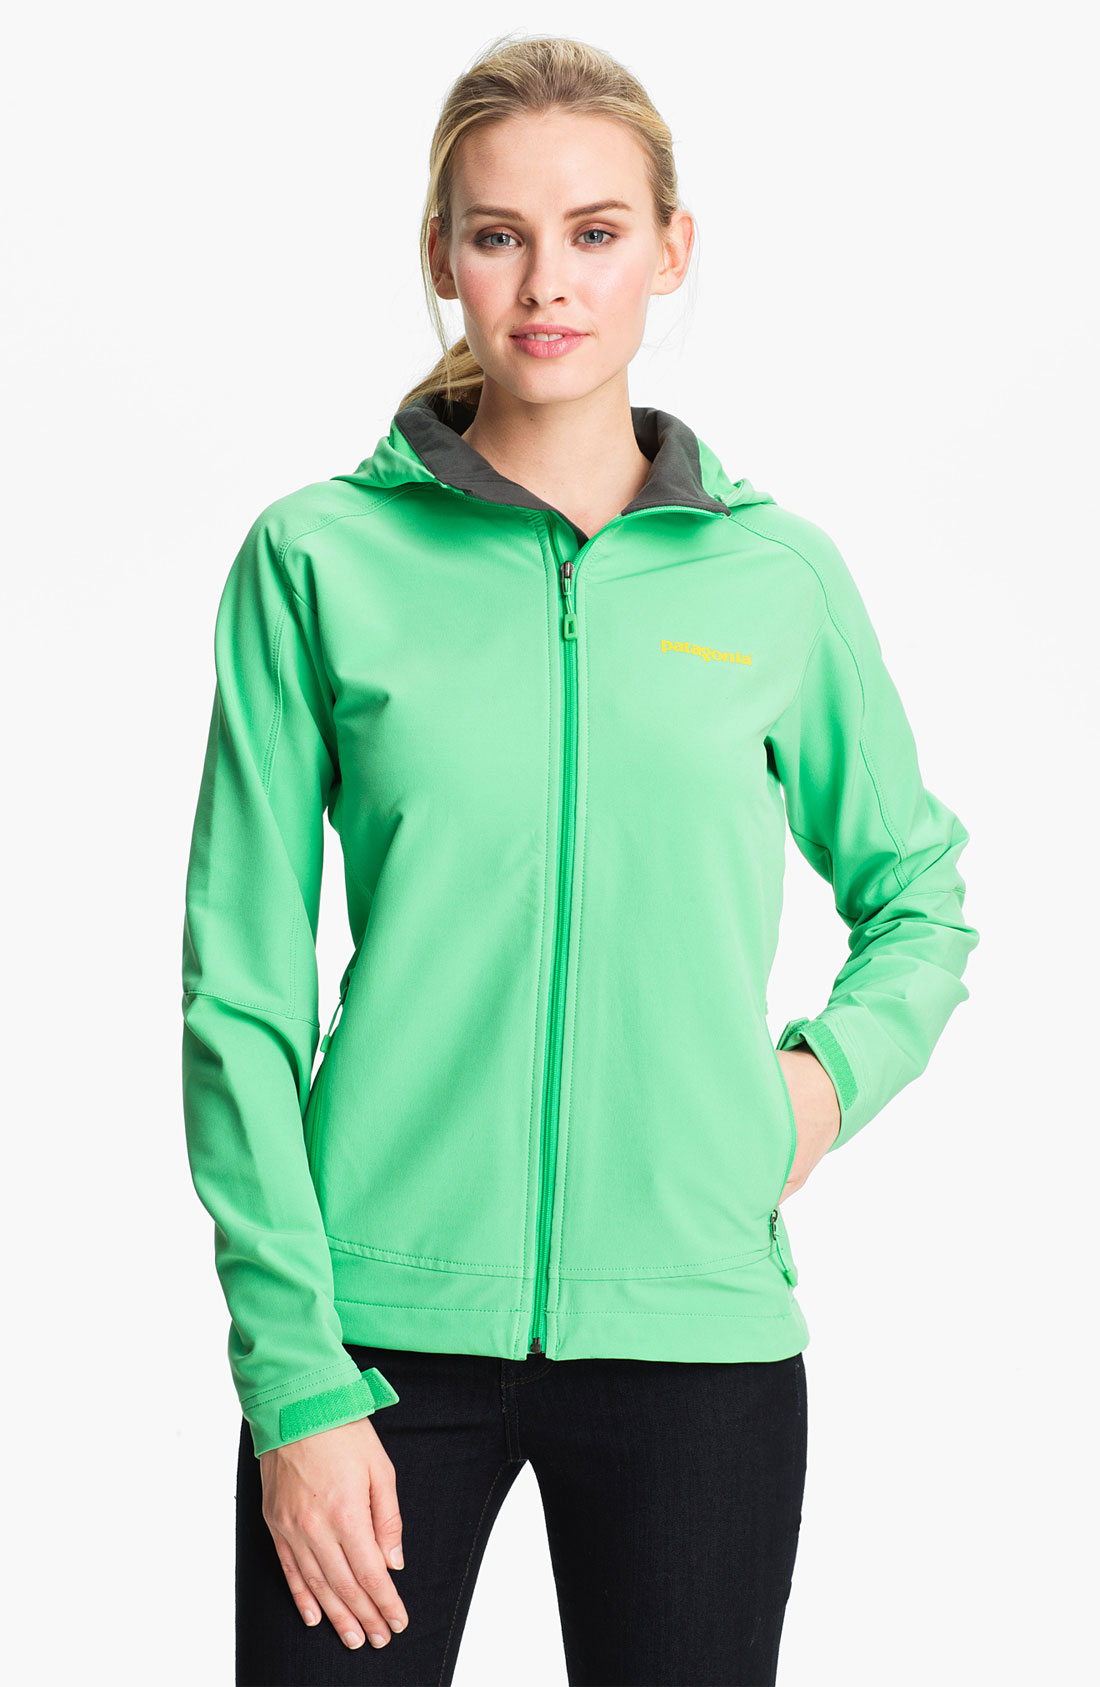 Patagonia Outdoor Clothing & Gear